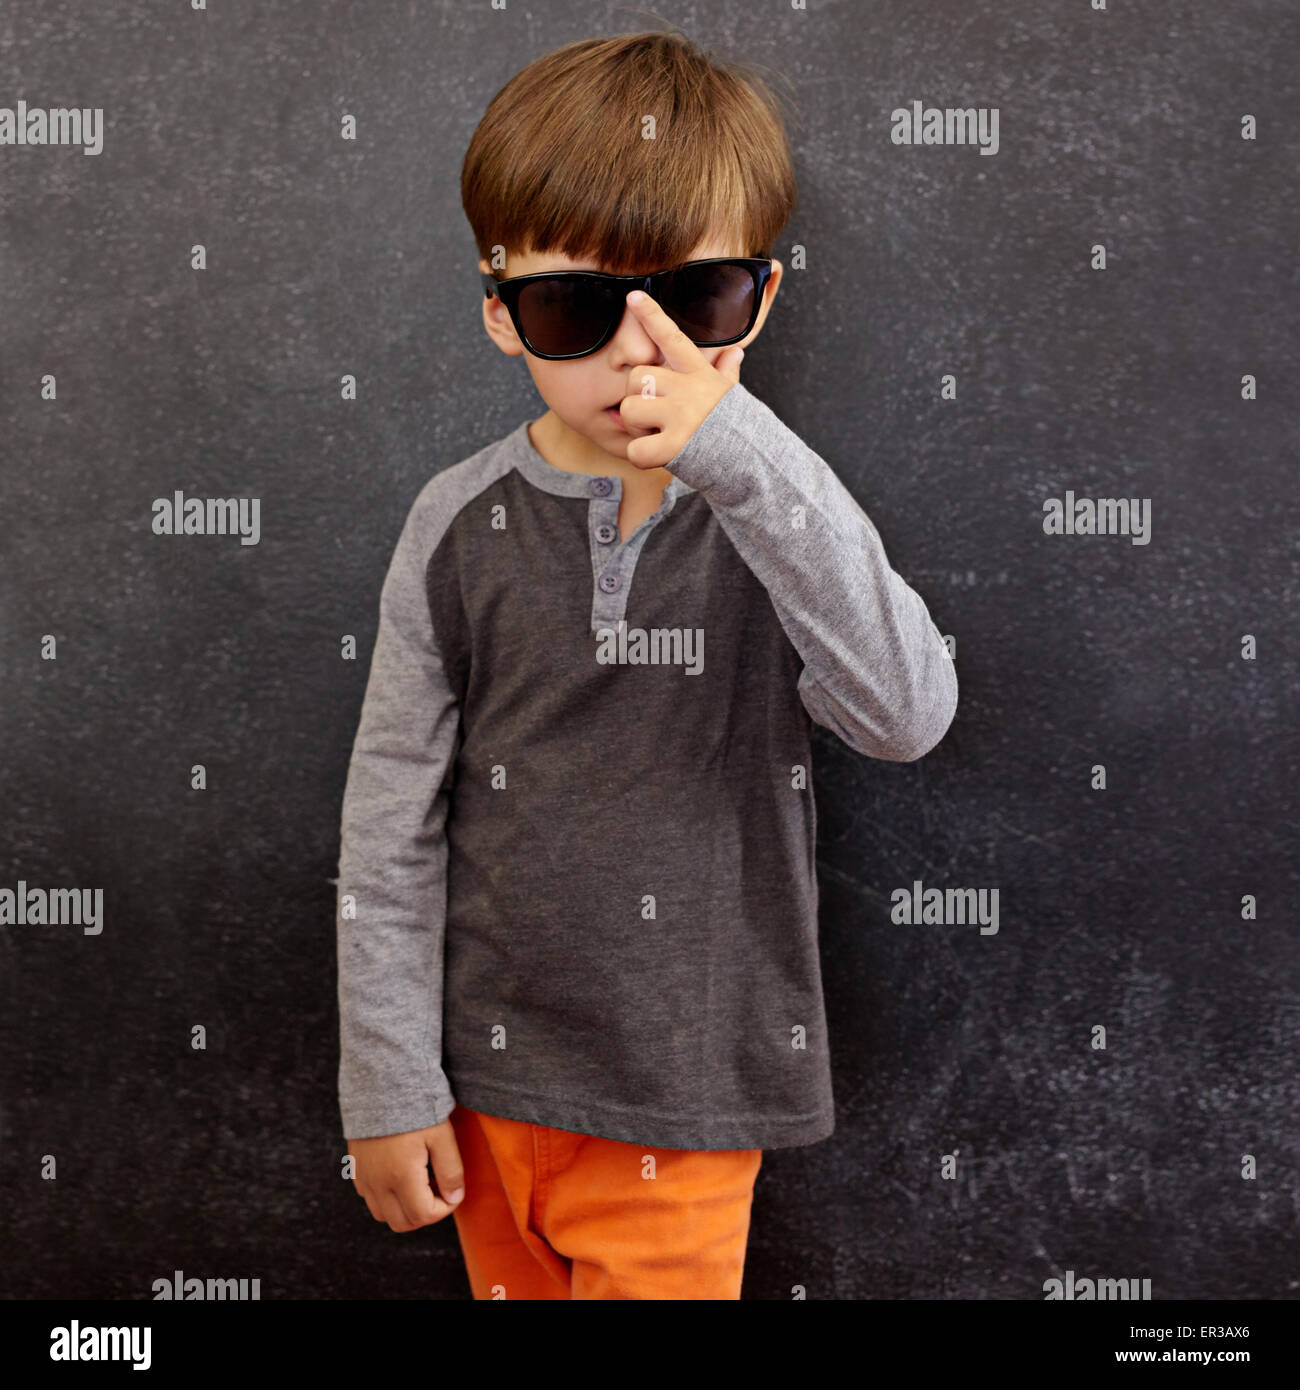 Portrait of little boy wearing sunglasses looking at camera. Small kid in front of a blackboard adjusting his shades. - Stock Image